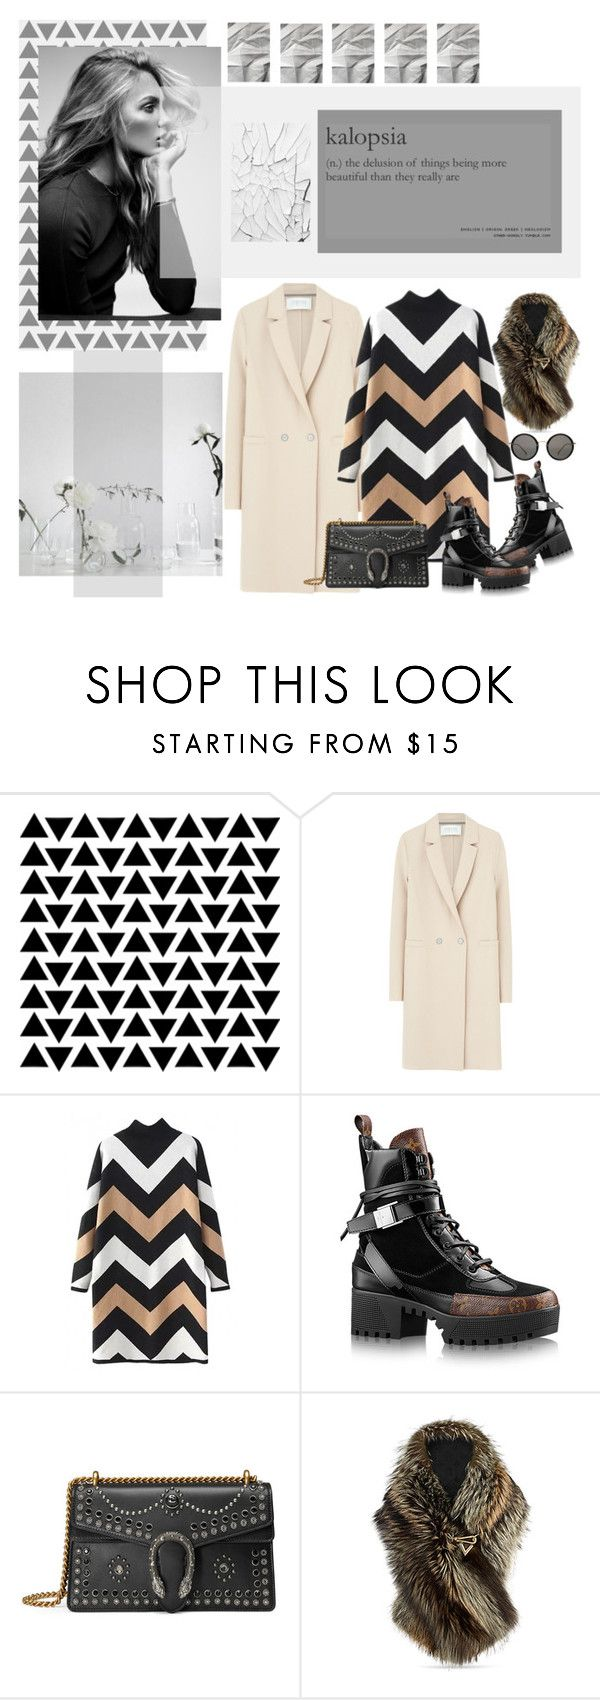 """""""kalopsia"""" by mariettamyan ❤ liked on Polyvore featuring Harris Wharf London, WithChic, Gucci and Linda Farrow"""